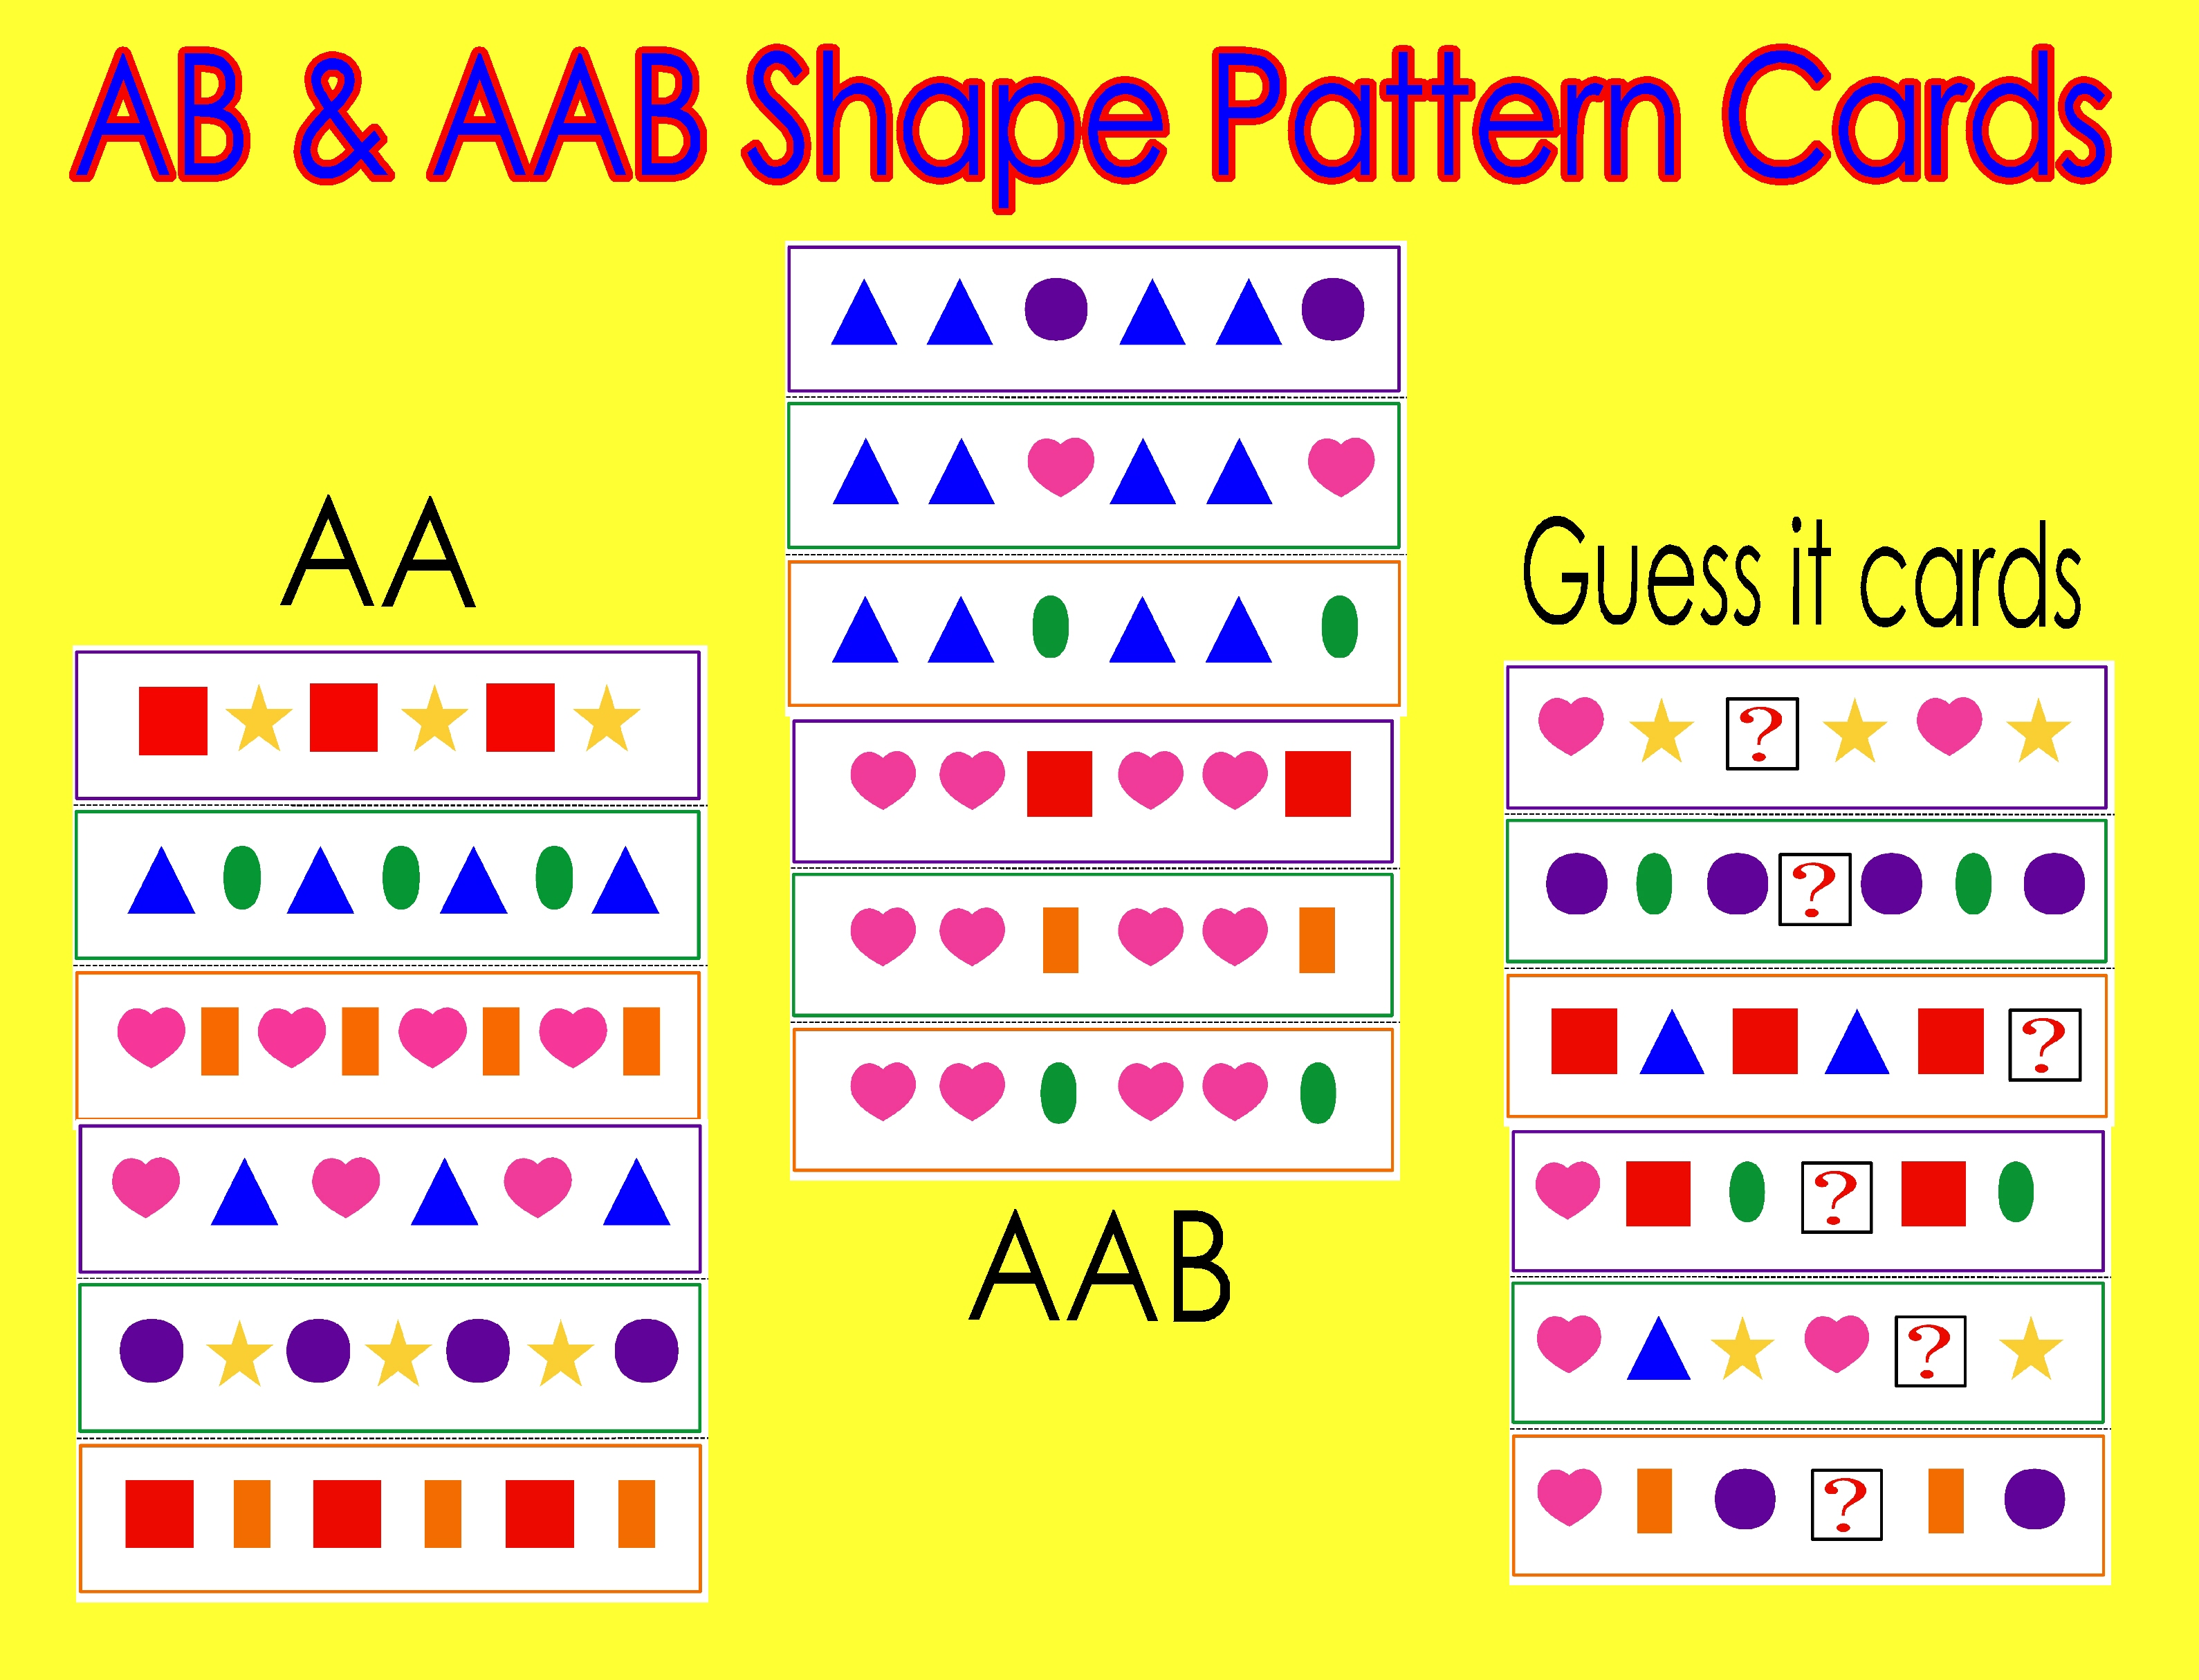 ab aab shape pattern cards meet the needs. Black Bedroom Furniture Sets. Home Design Ideas